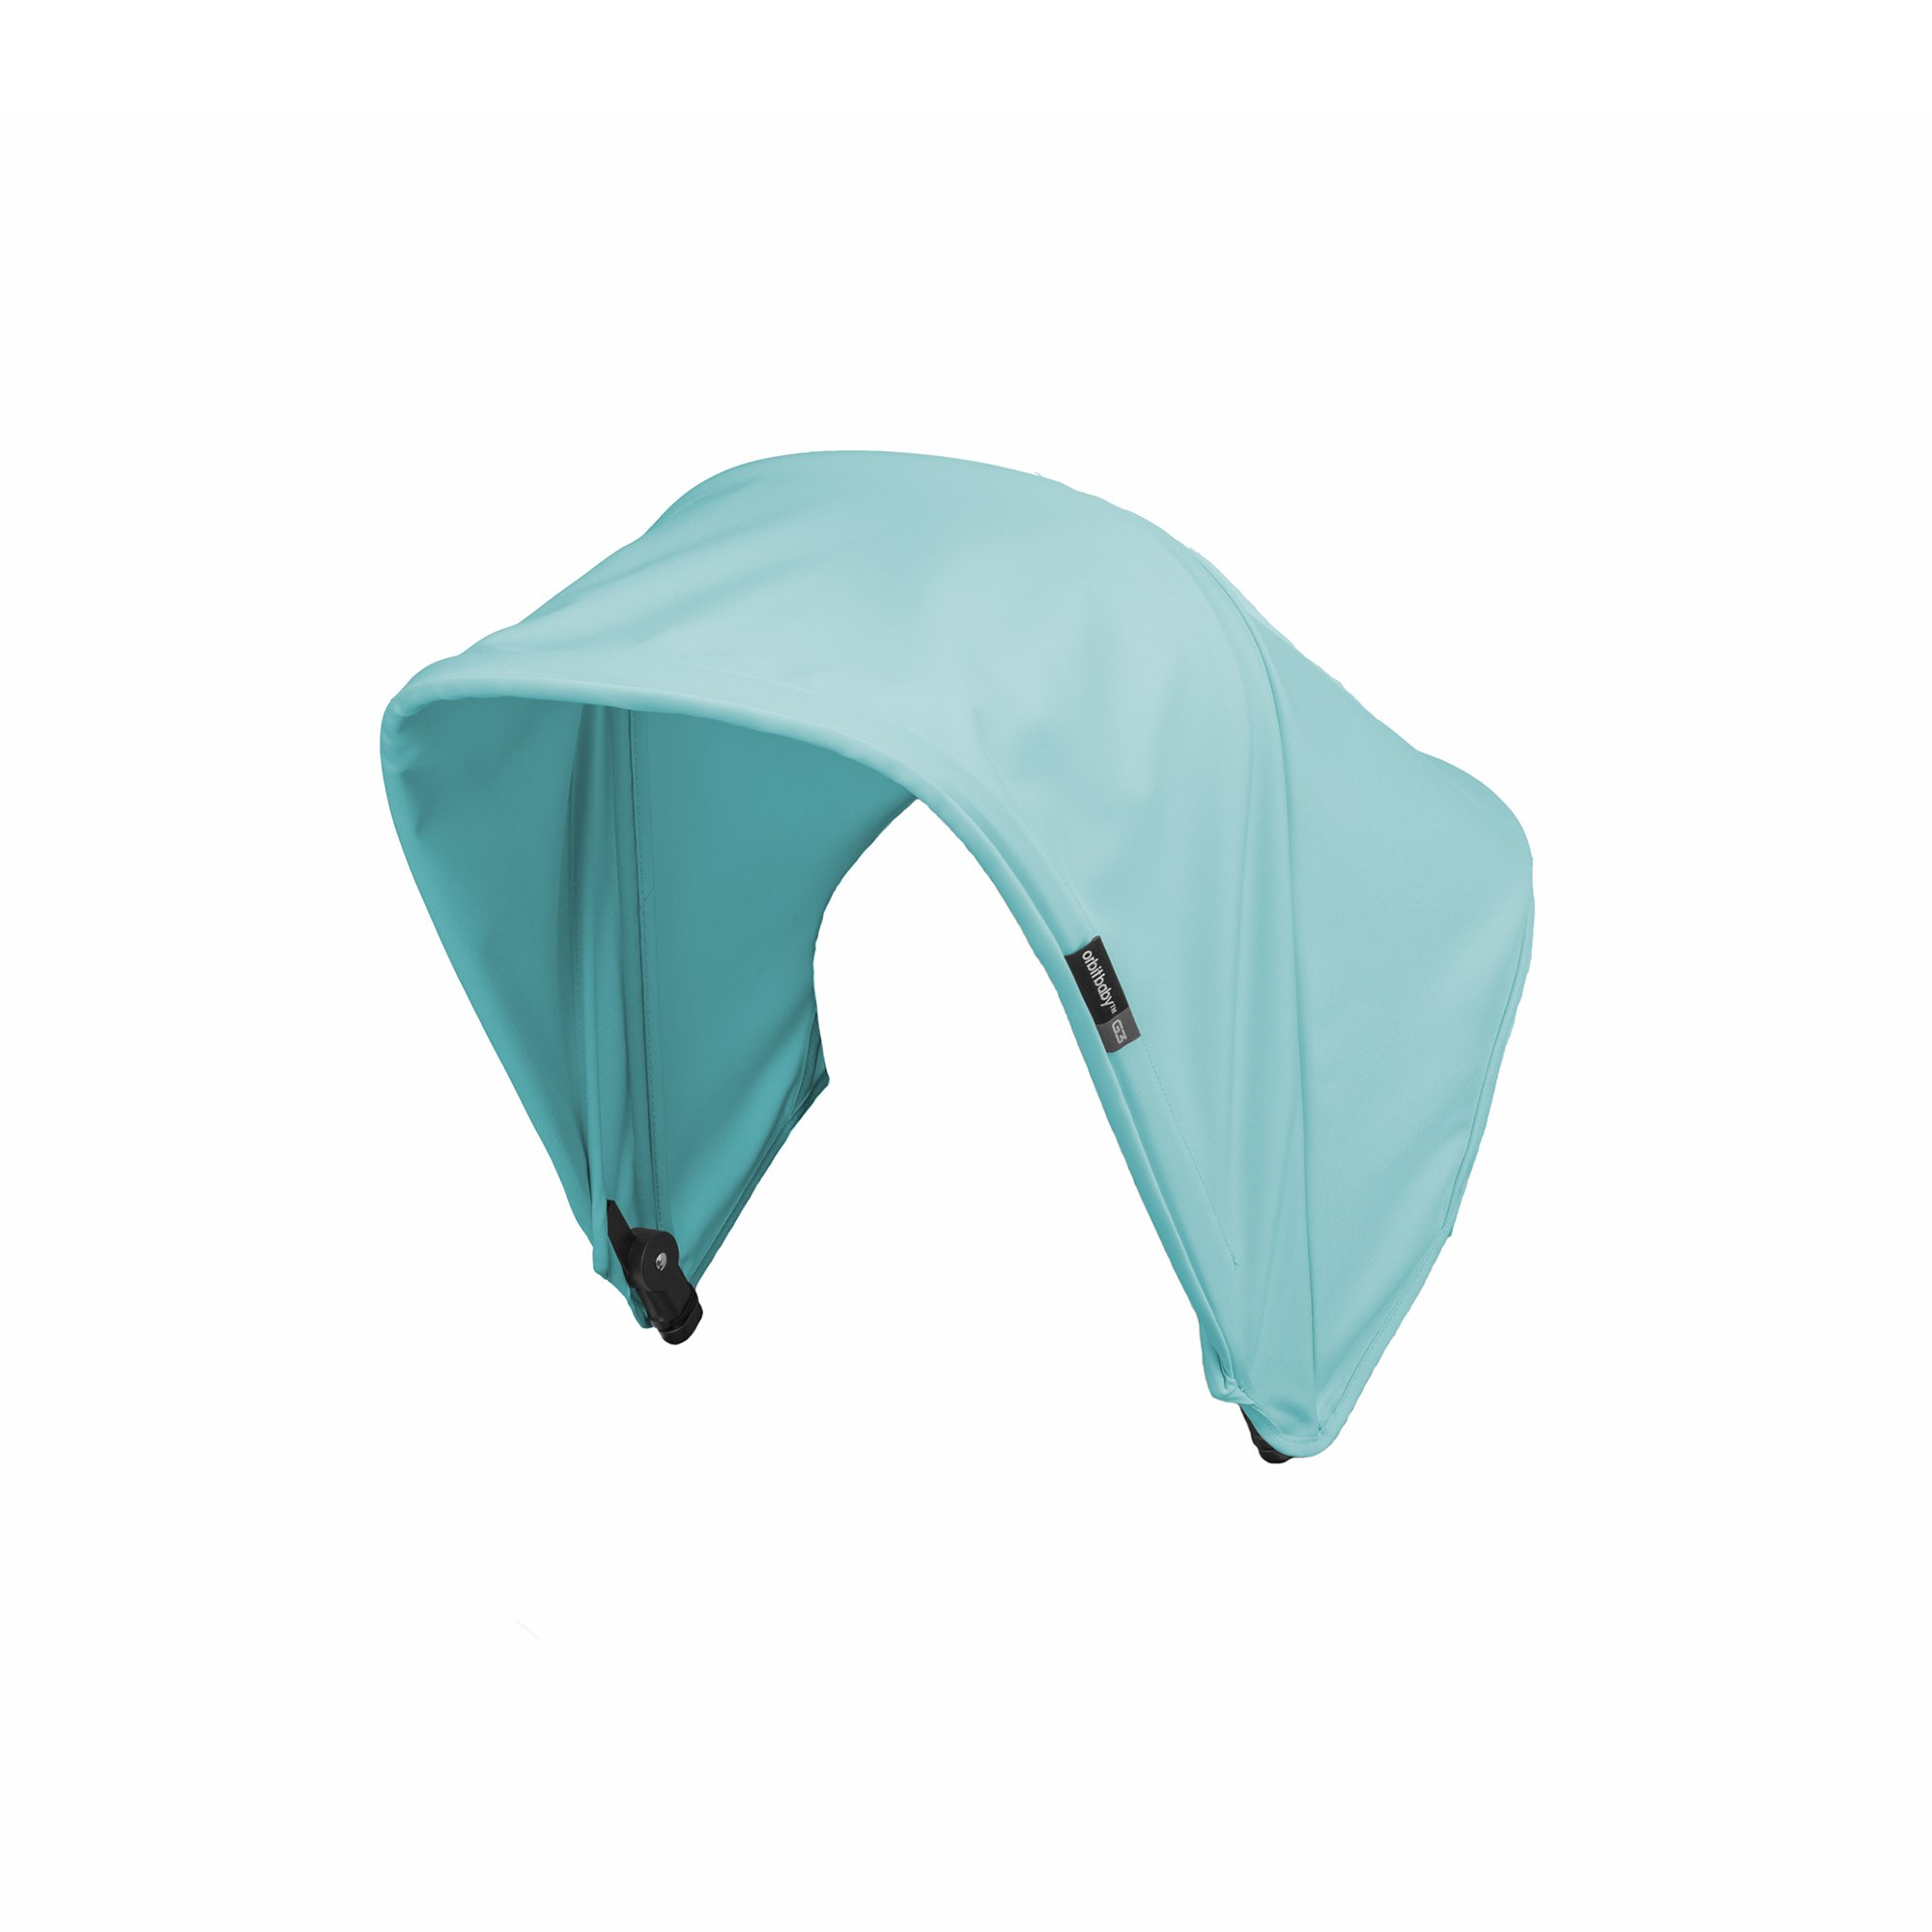 Orbit Baby G3 Stroller Sunshade, Teal product image